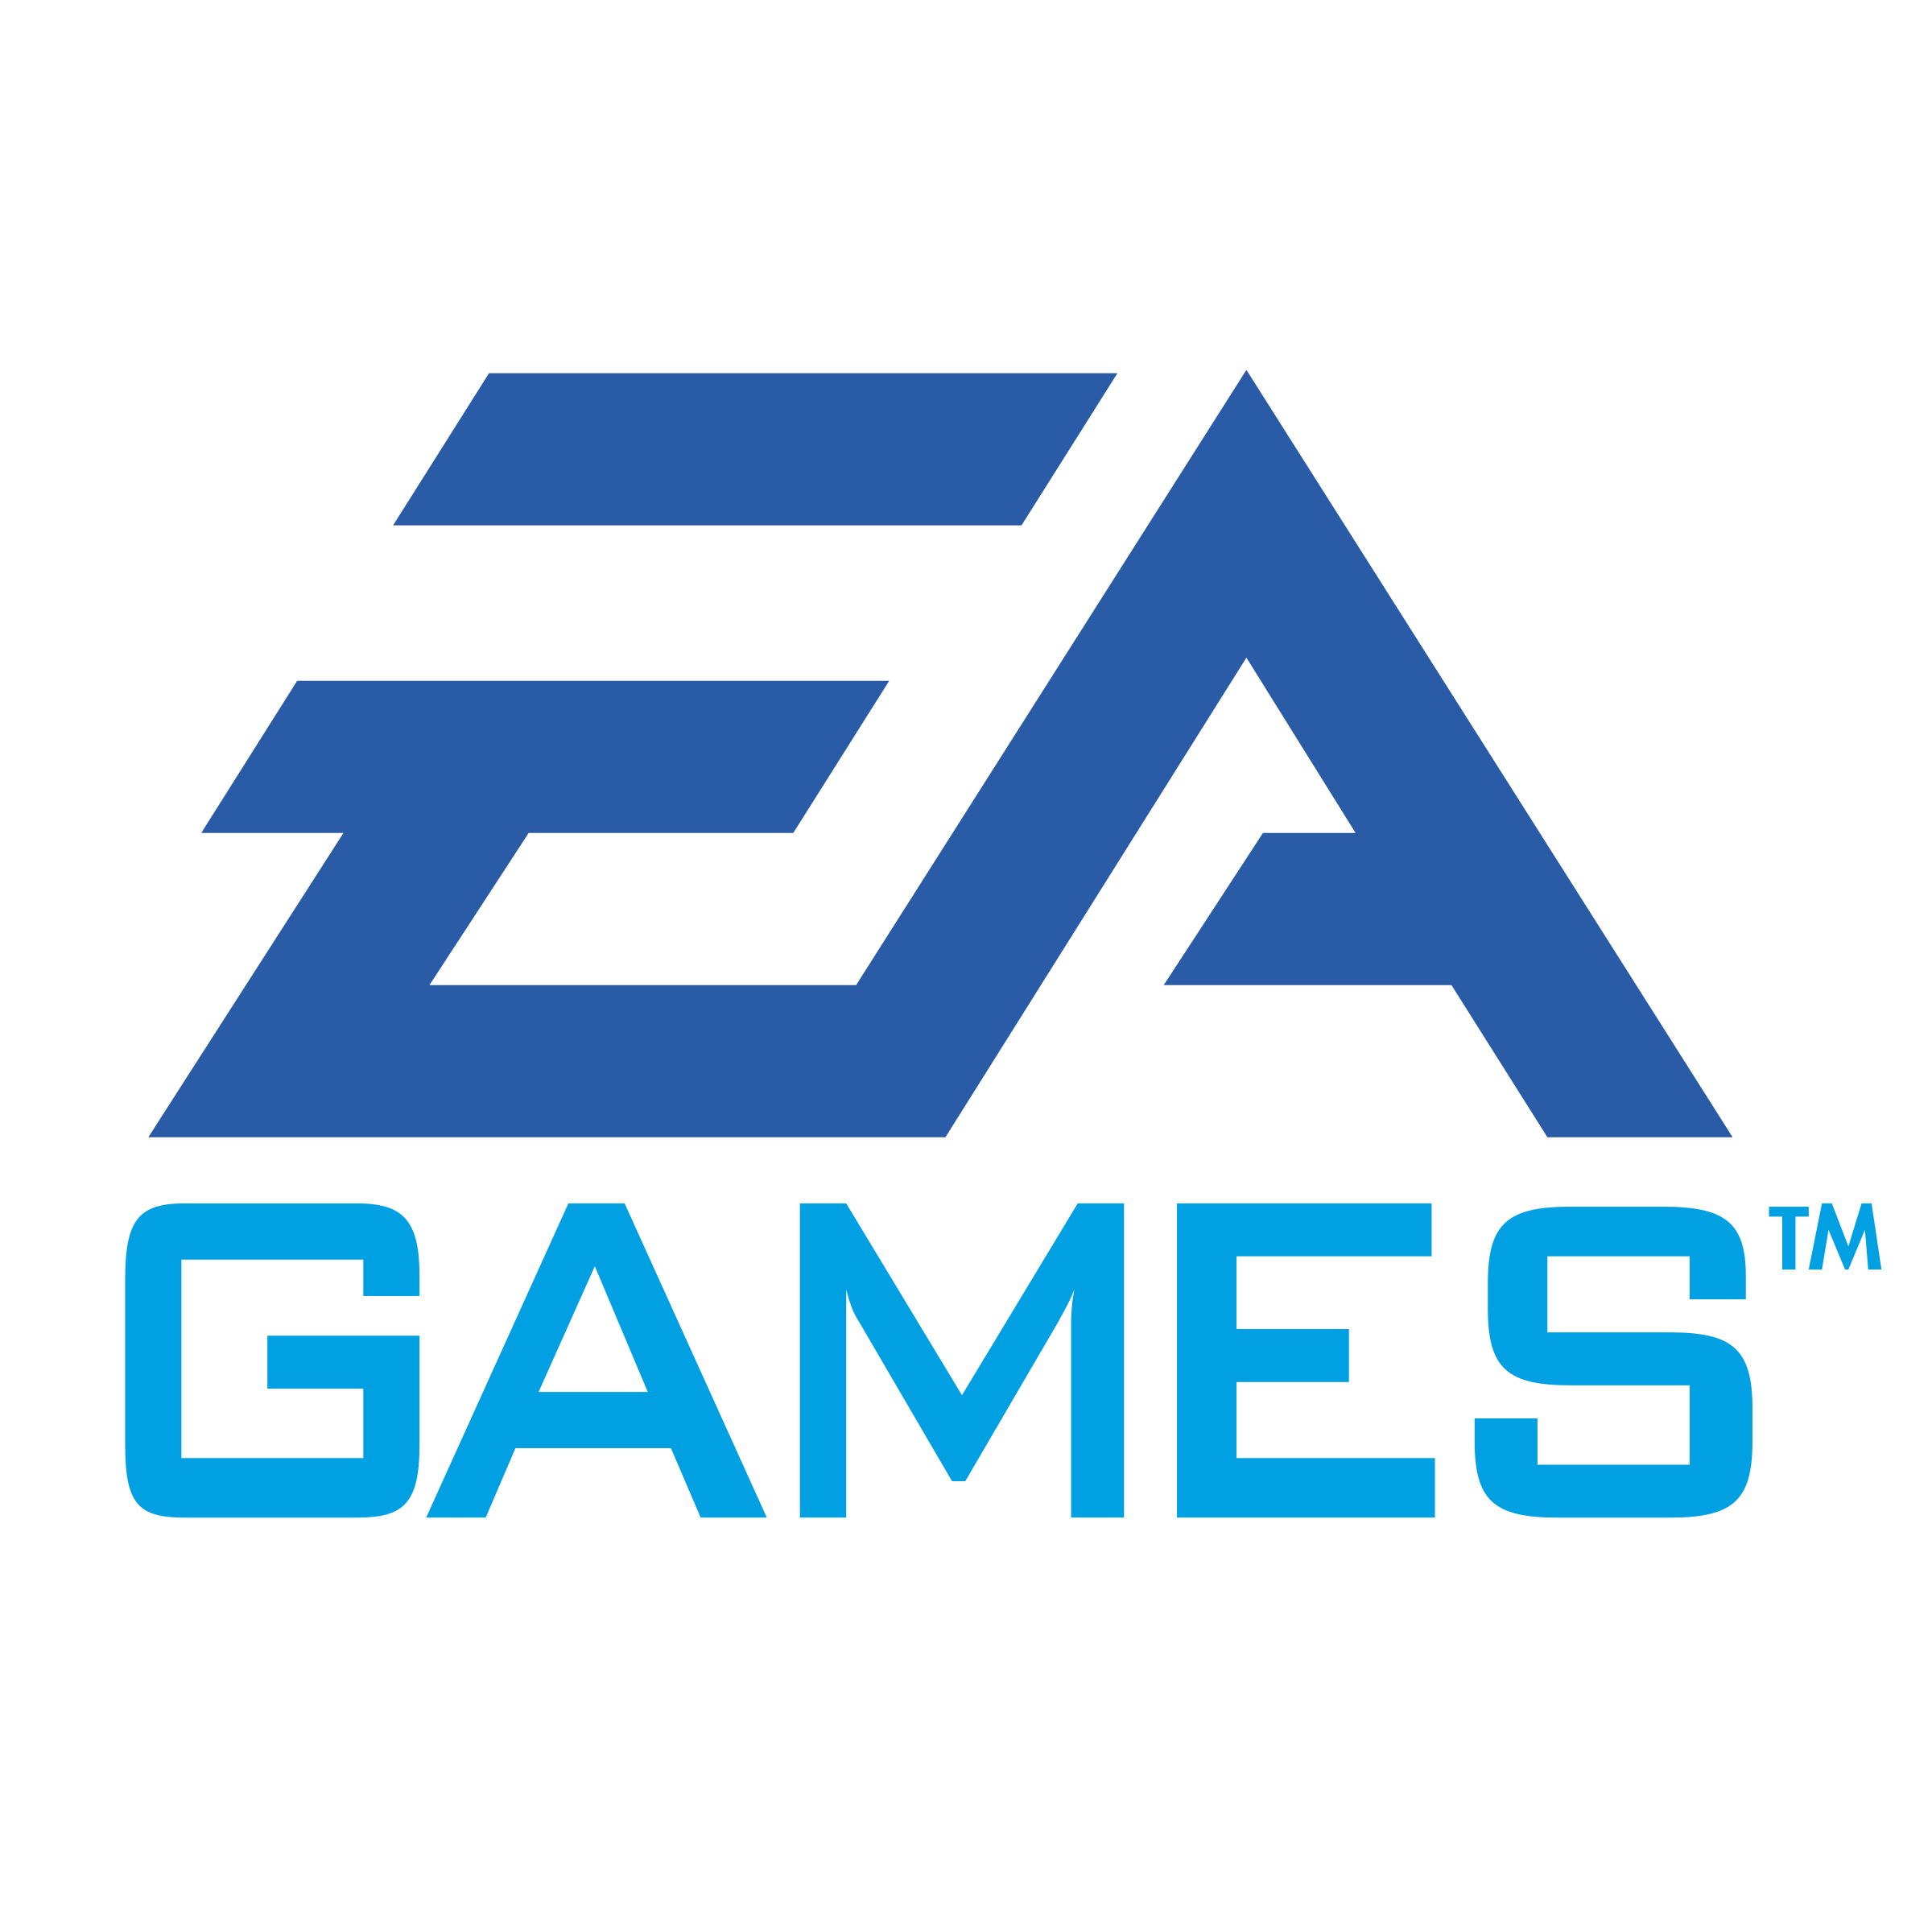 Ea games logo png. Transparent svg vector freebie